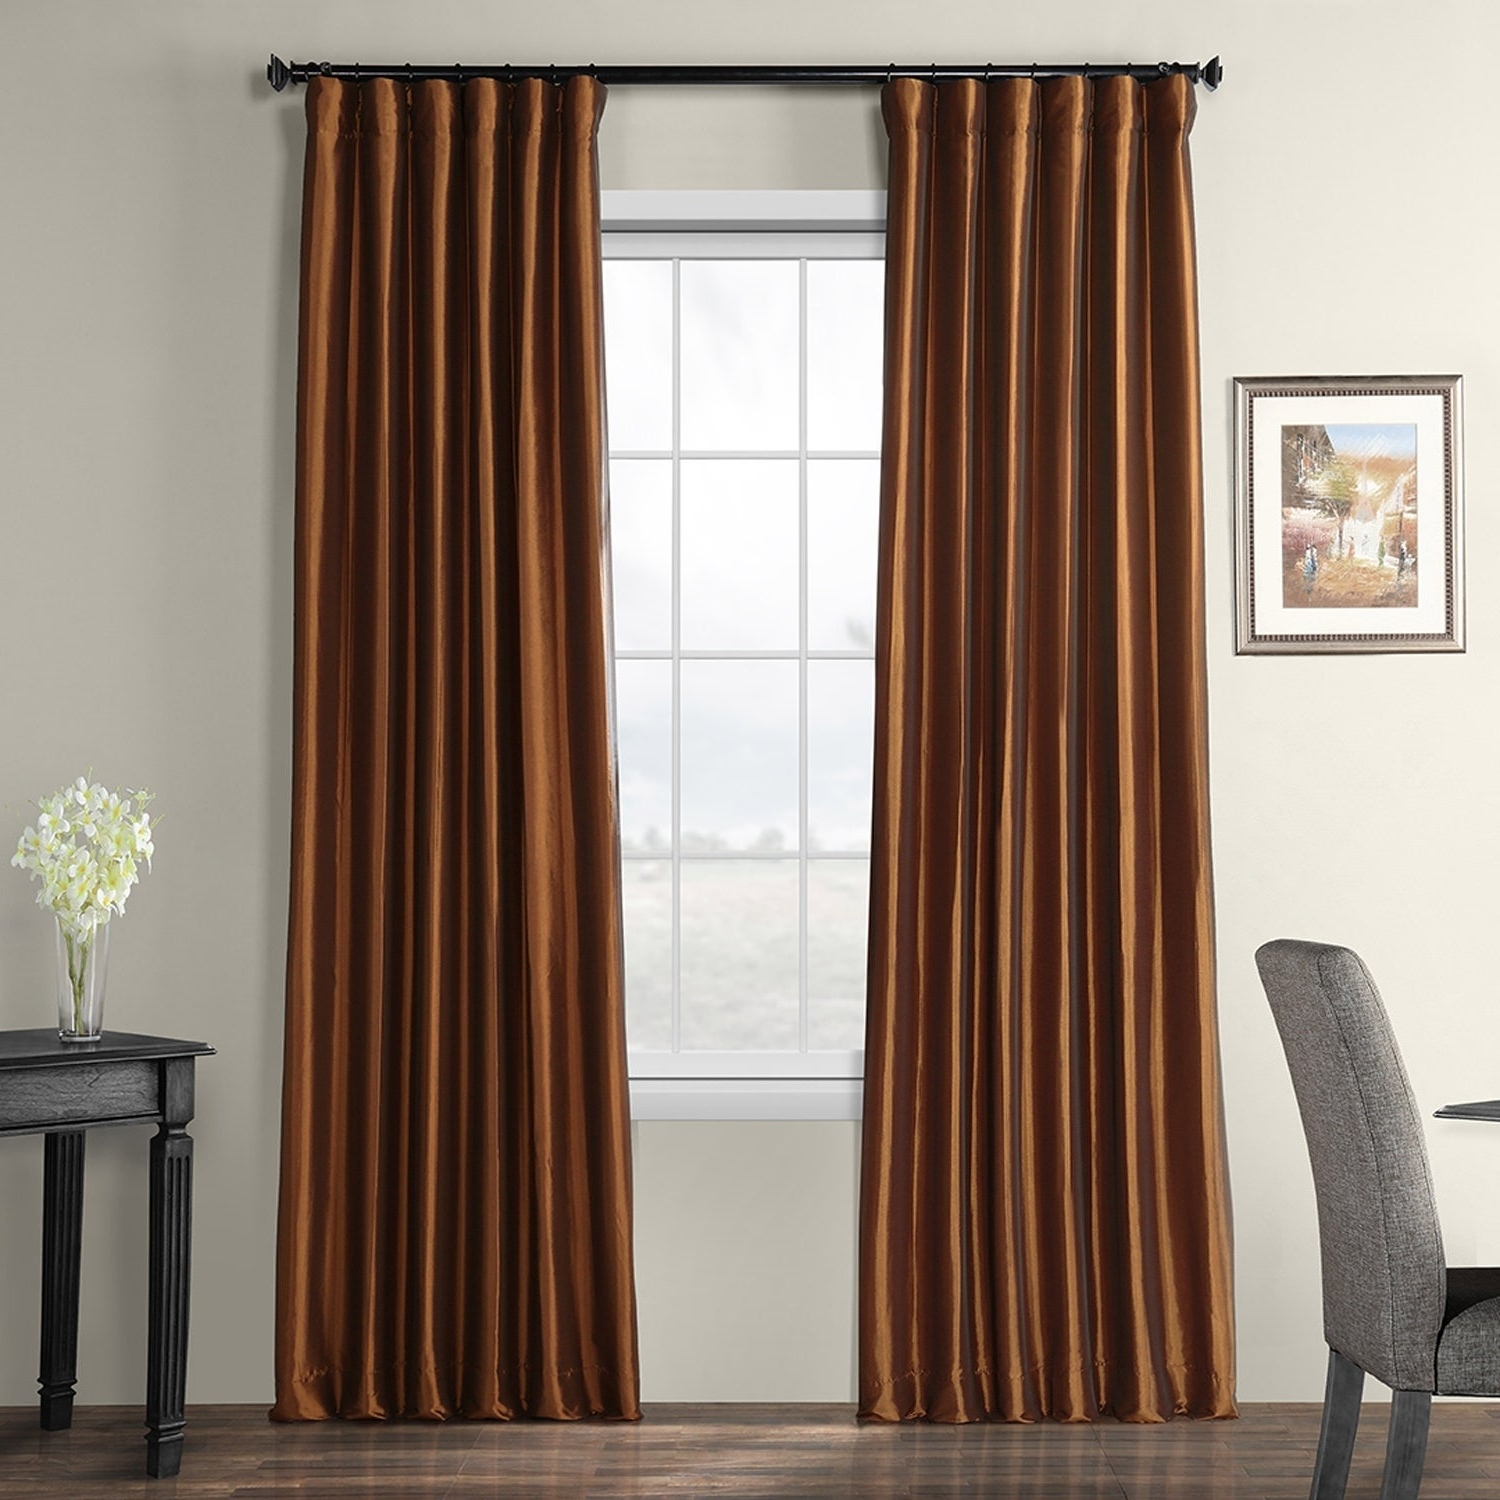 Famous Exclusive Fabrics Faux Silk Taffeta 96 Inch Blackout Curtain Panel Regarding True Blackout Vintage Textured Faux Silk Curtain Panels (Gallery 18 of 20)